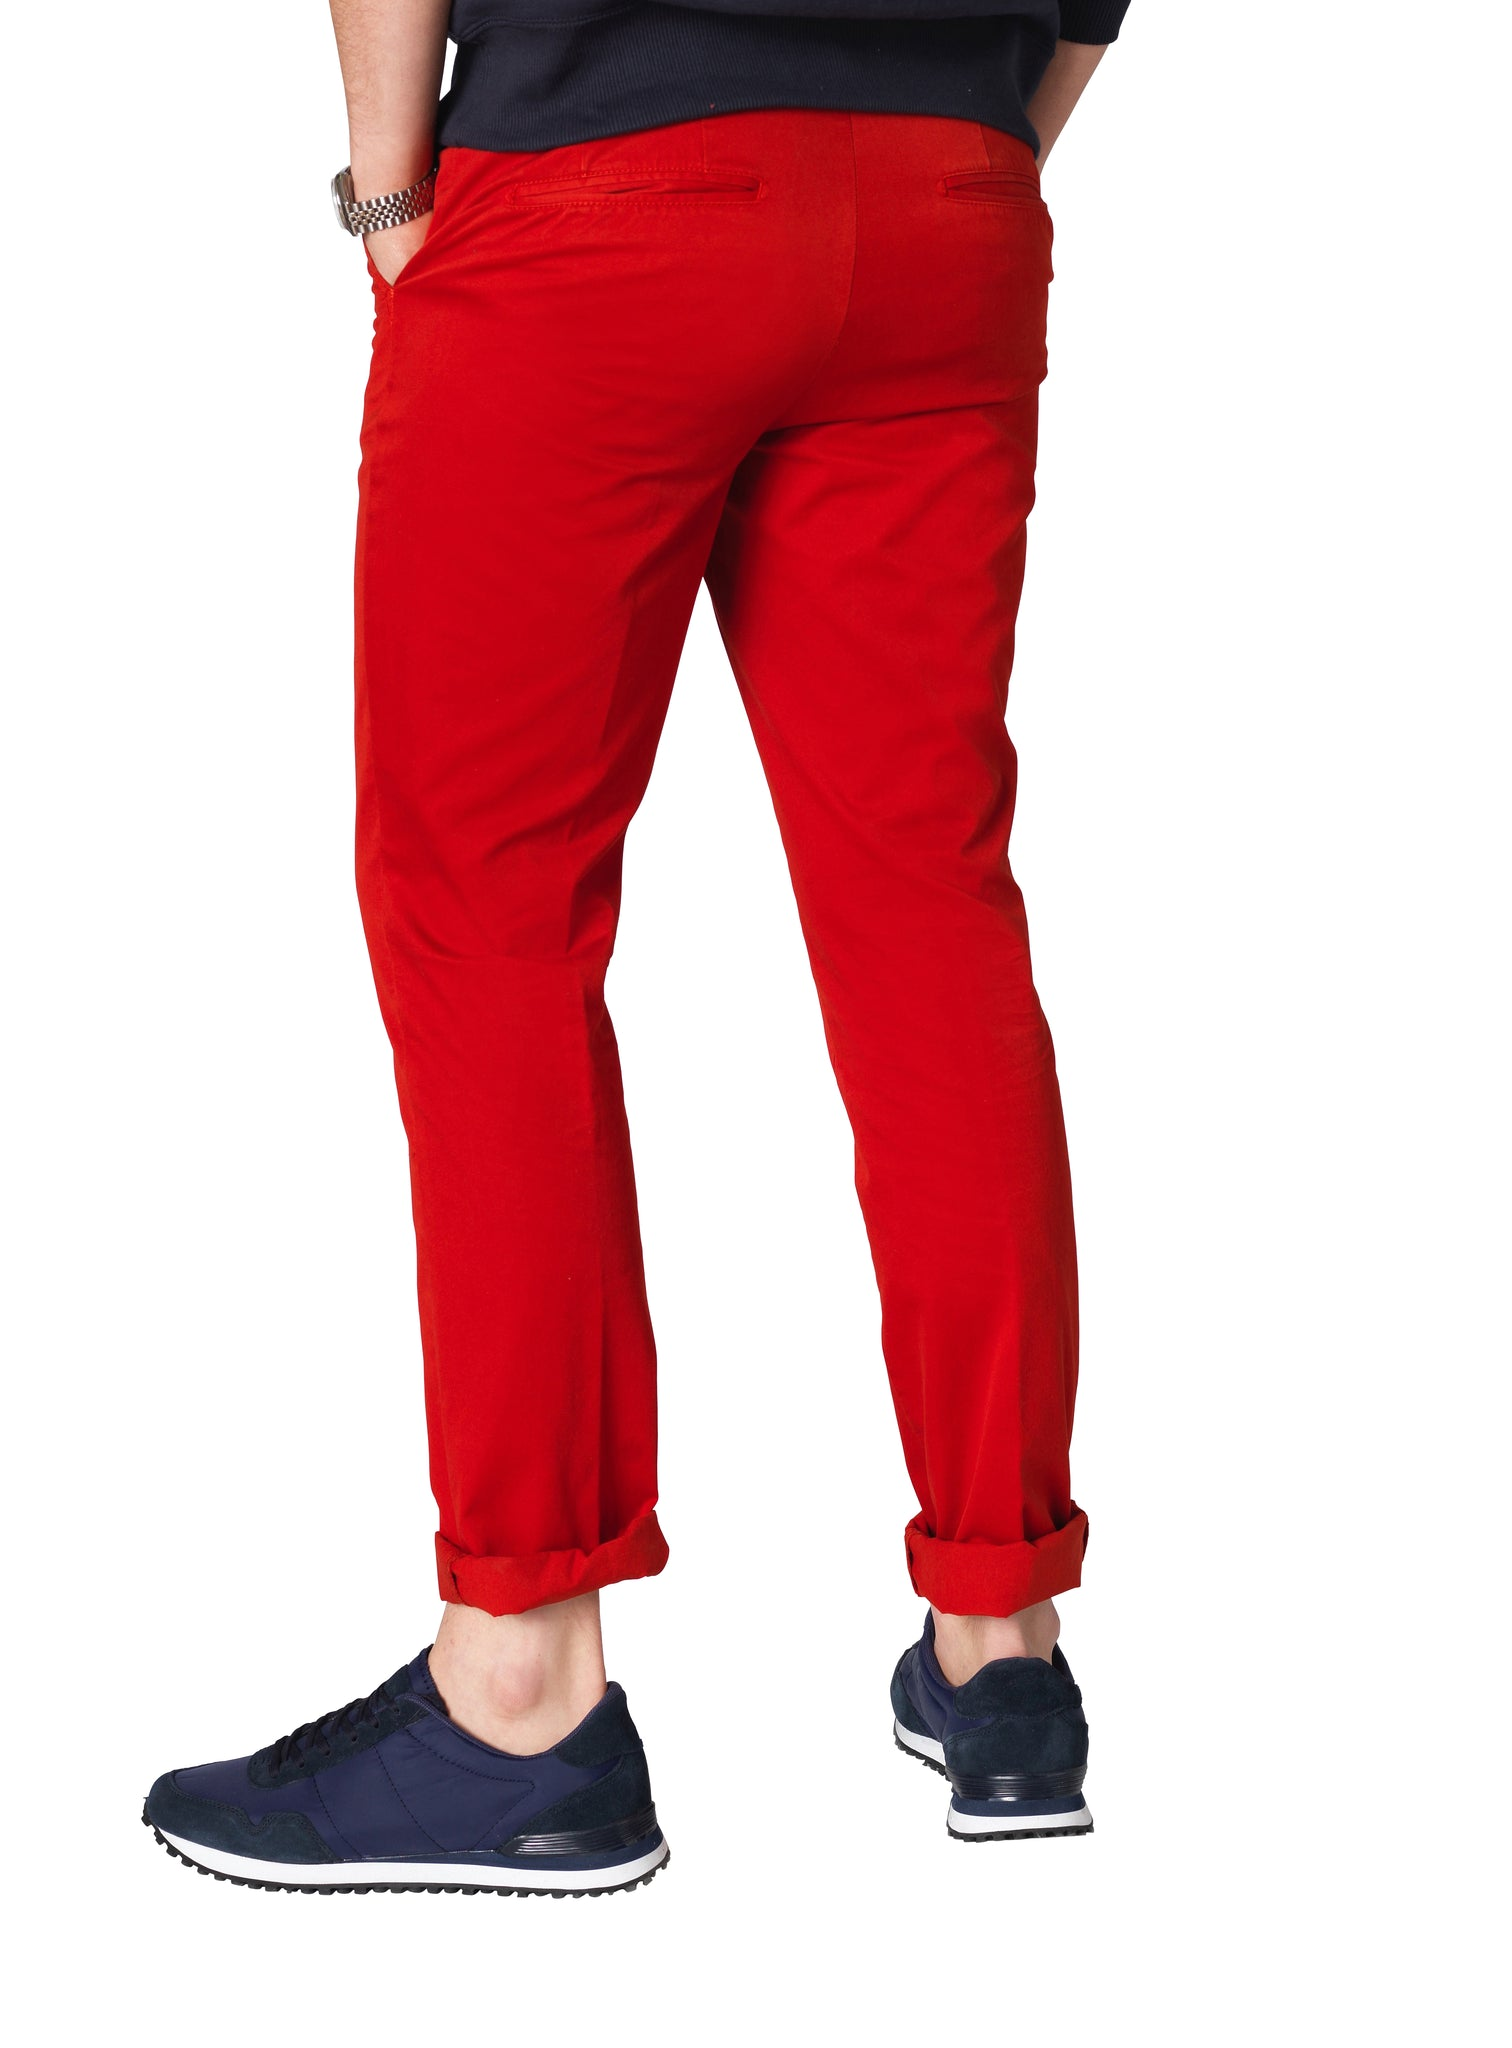 Chilli Red 30 Year Chinos